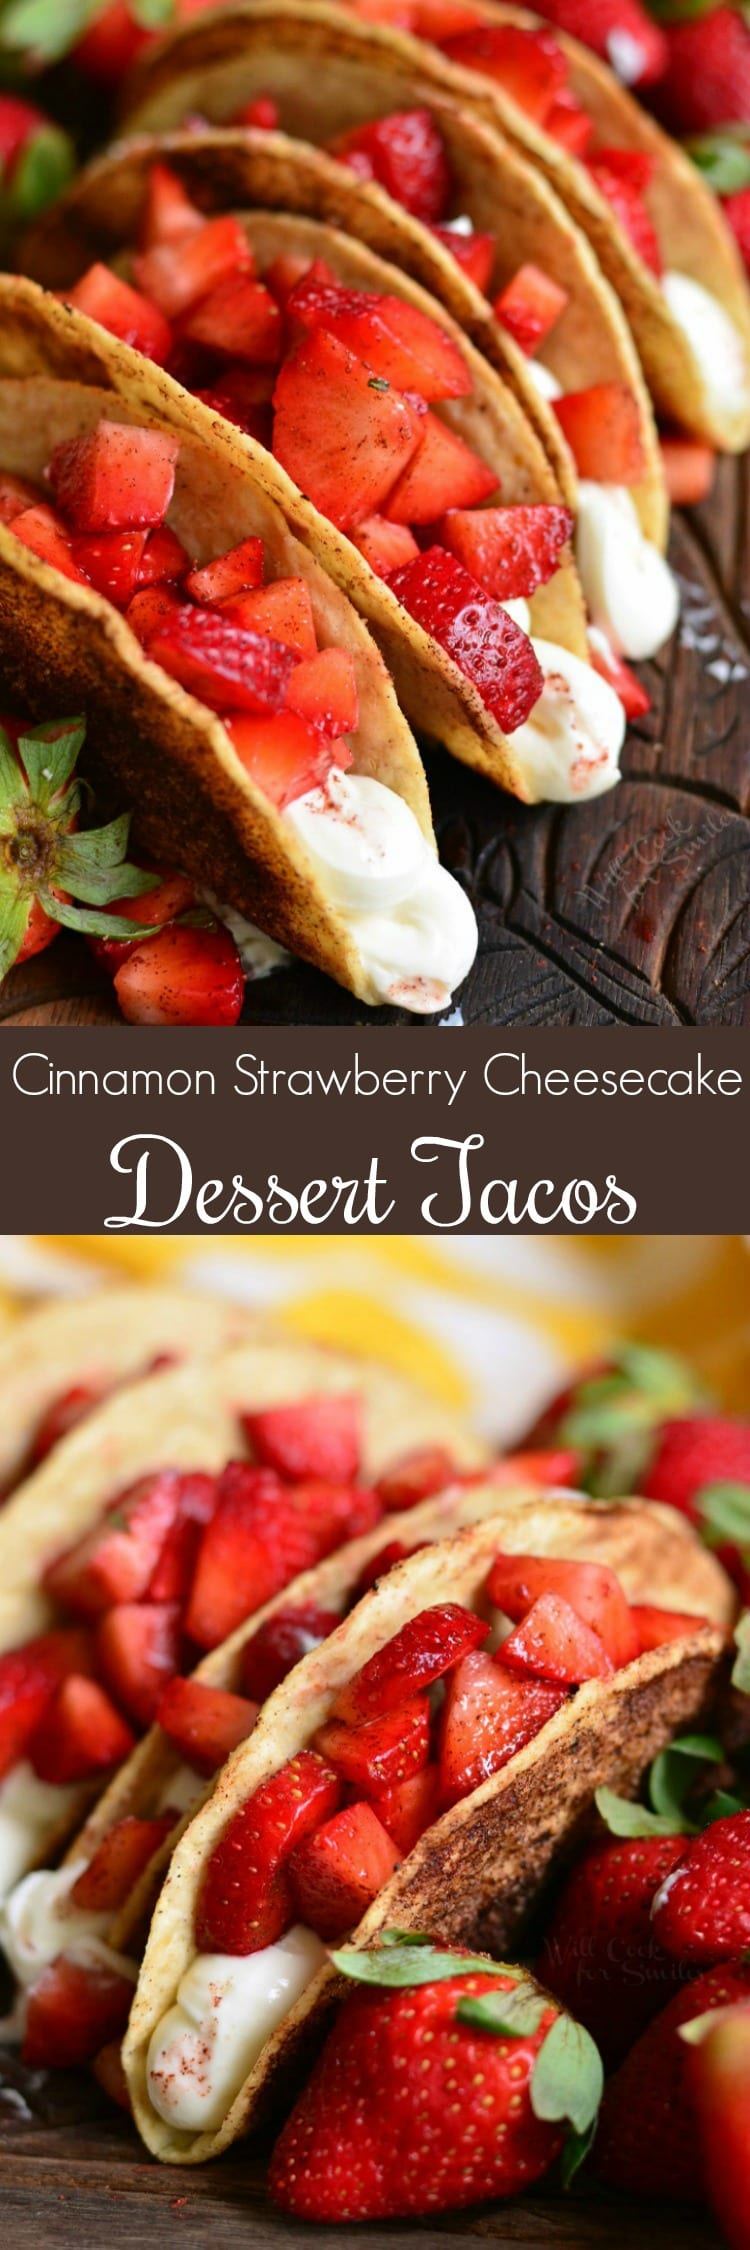 Cinnamon Strawberry Cheesecake Dessert Tacos. Crunchy corn taco shells are coated in butter and cinnamon sugar mixture, baked, and filled with no-bake cheesecake filling and fresh, cinnamon kissed strawberries. #tacos #strawberry #desserttaco